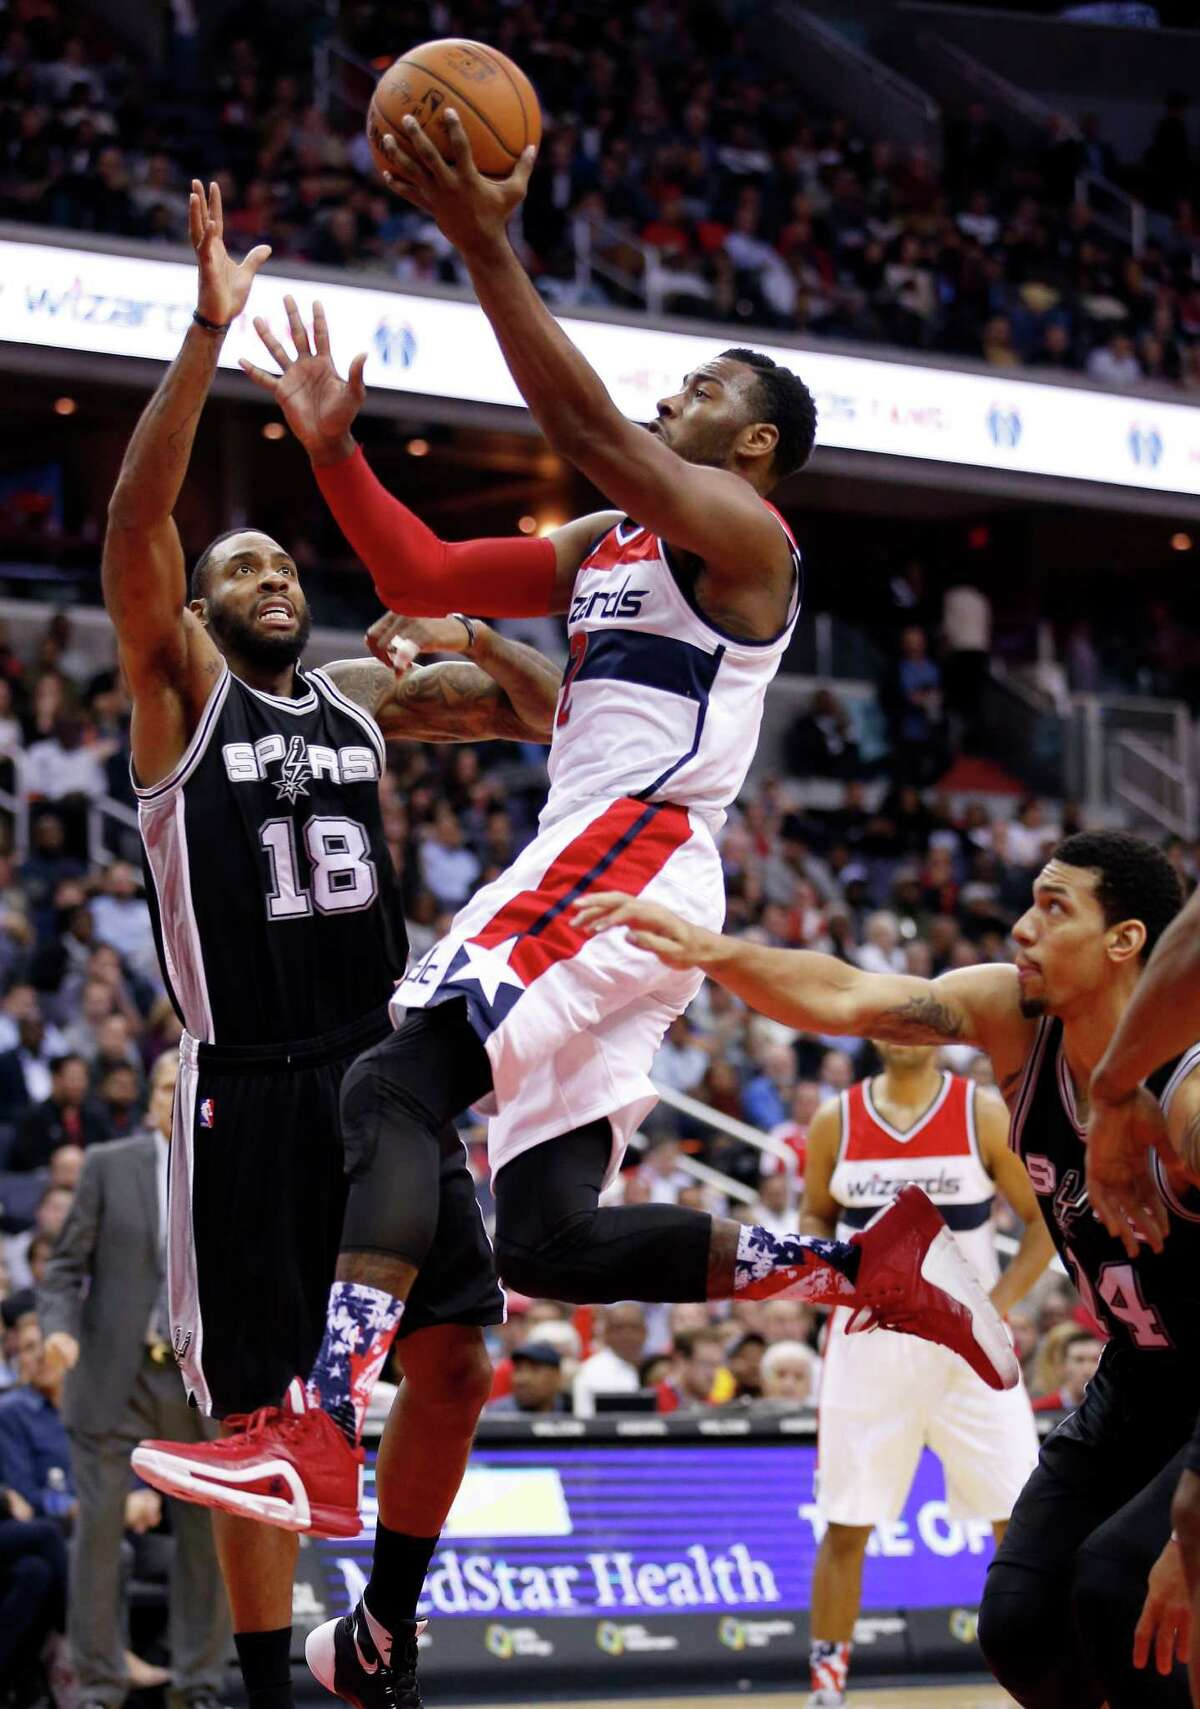 Wizards guard John Wall shoots between Spurs forward Rasual Butler (18) and guard Danny Green (14) during the second half on Nov. 4, 2015, in Washington. The Wizards won 102-99.